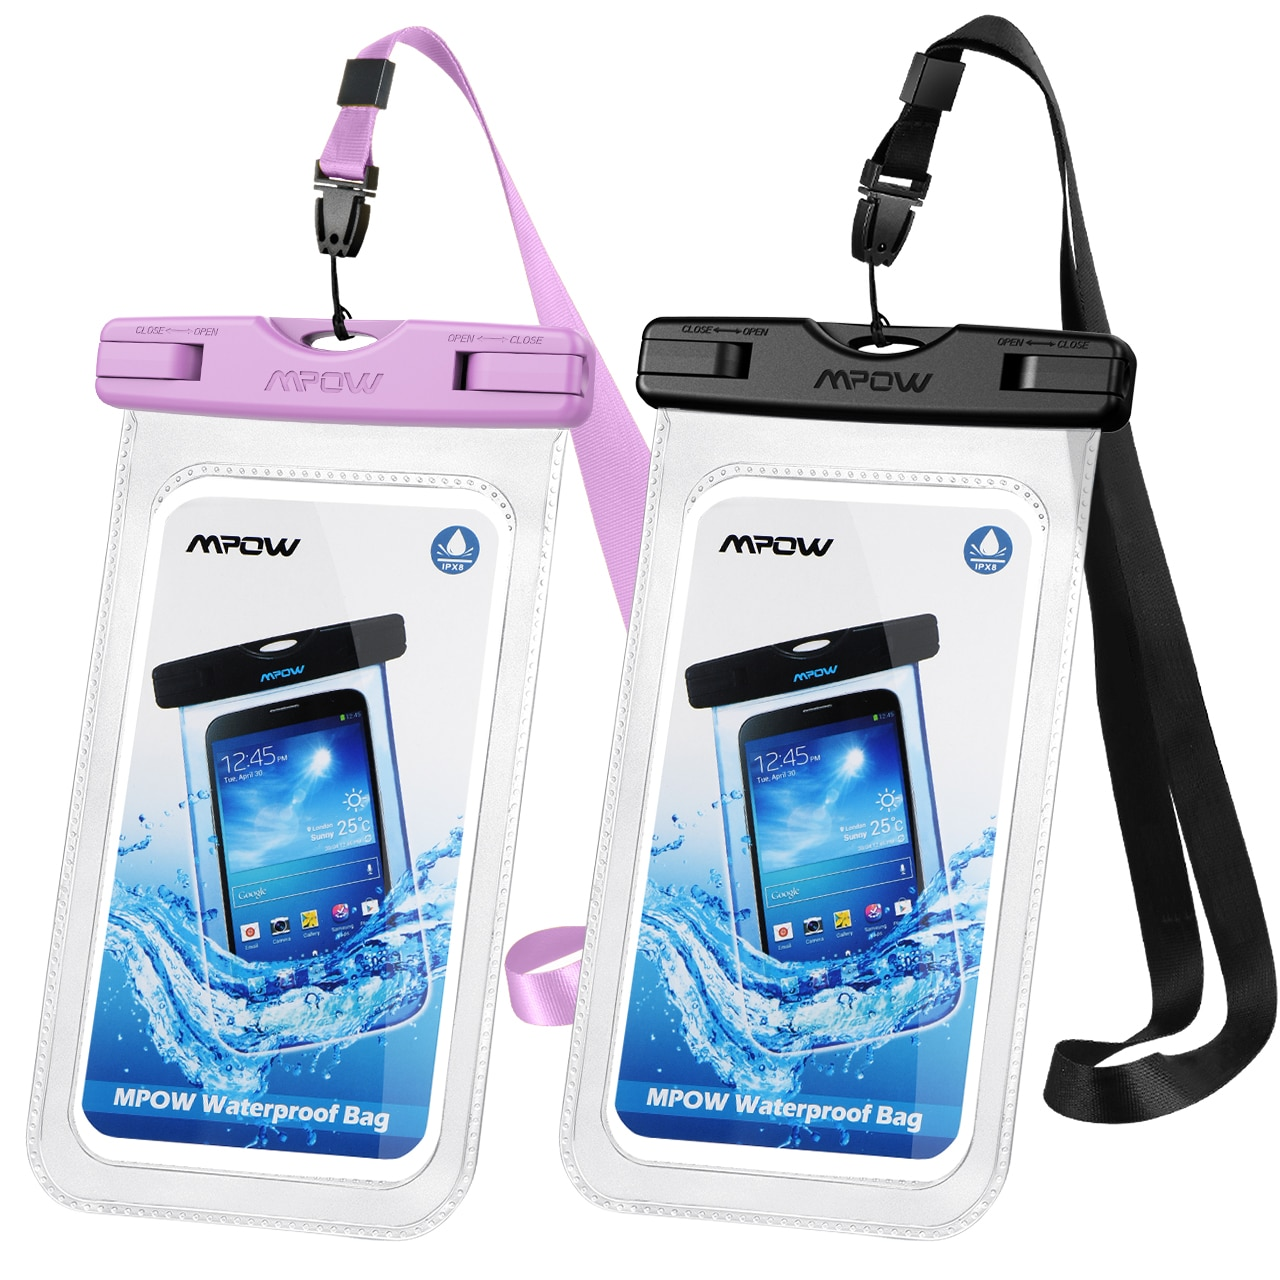 H6e01c7795708498c86395964203bdc34O - 2PCS Mpow 097 IPX8 Waterproof Phone Bag Pouch Case Universal for 7.0 inch Phones Home Button Cutout Take Photo Underwater IP68